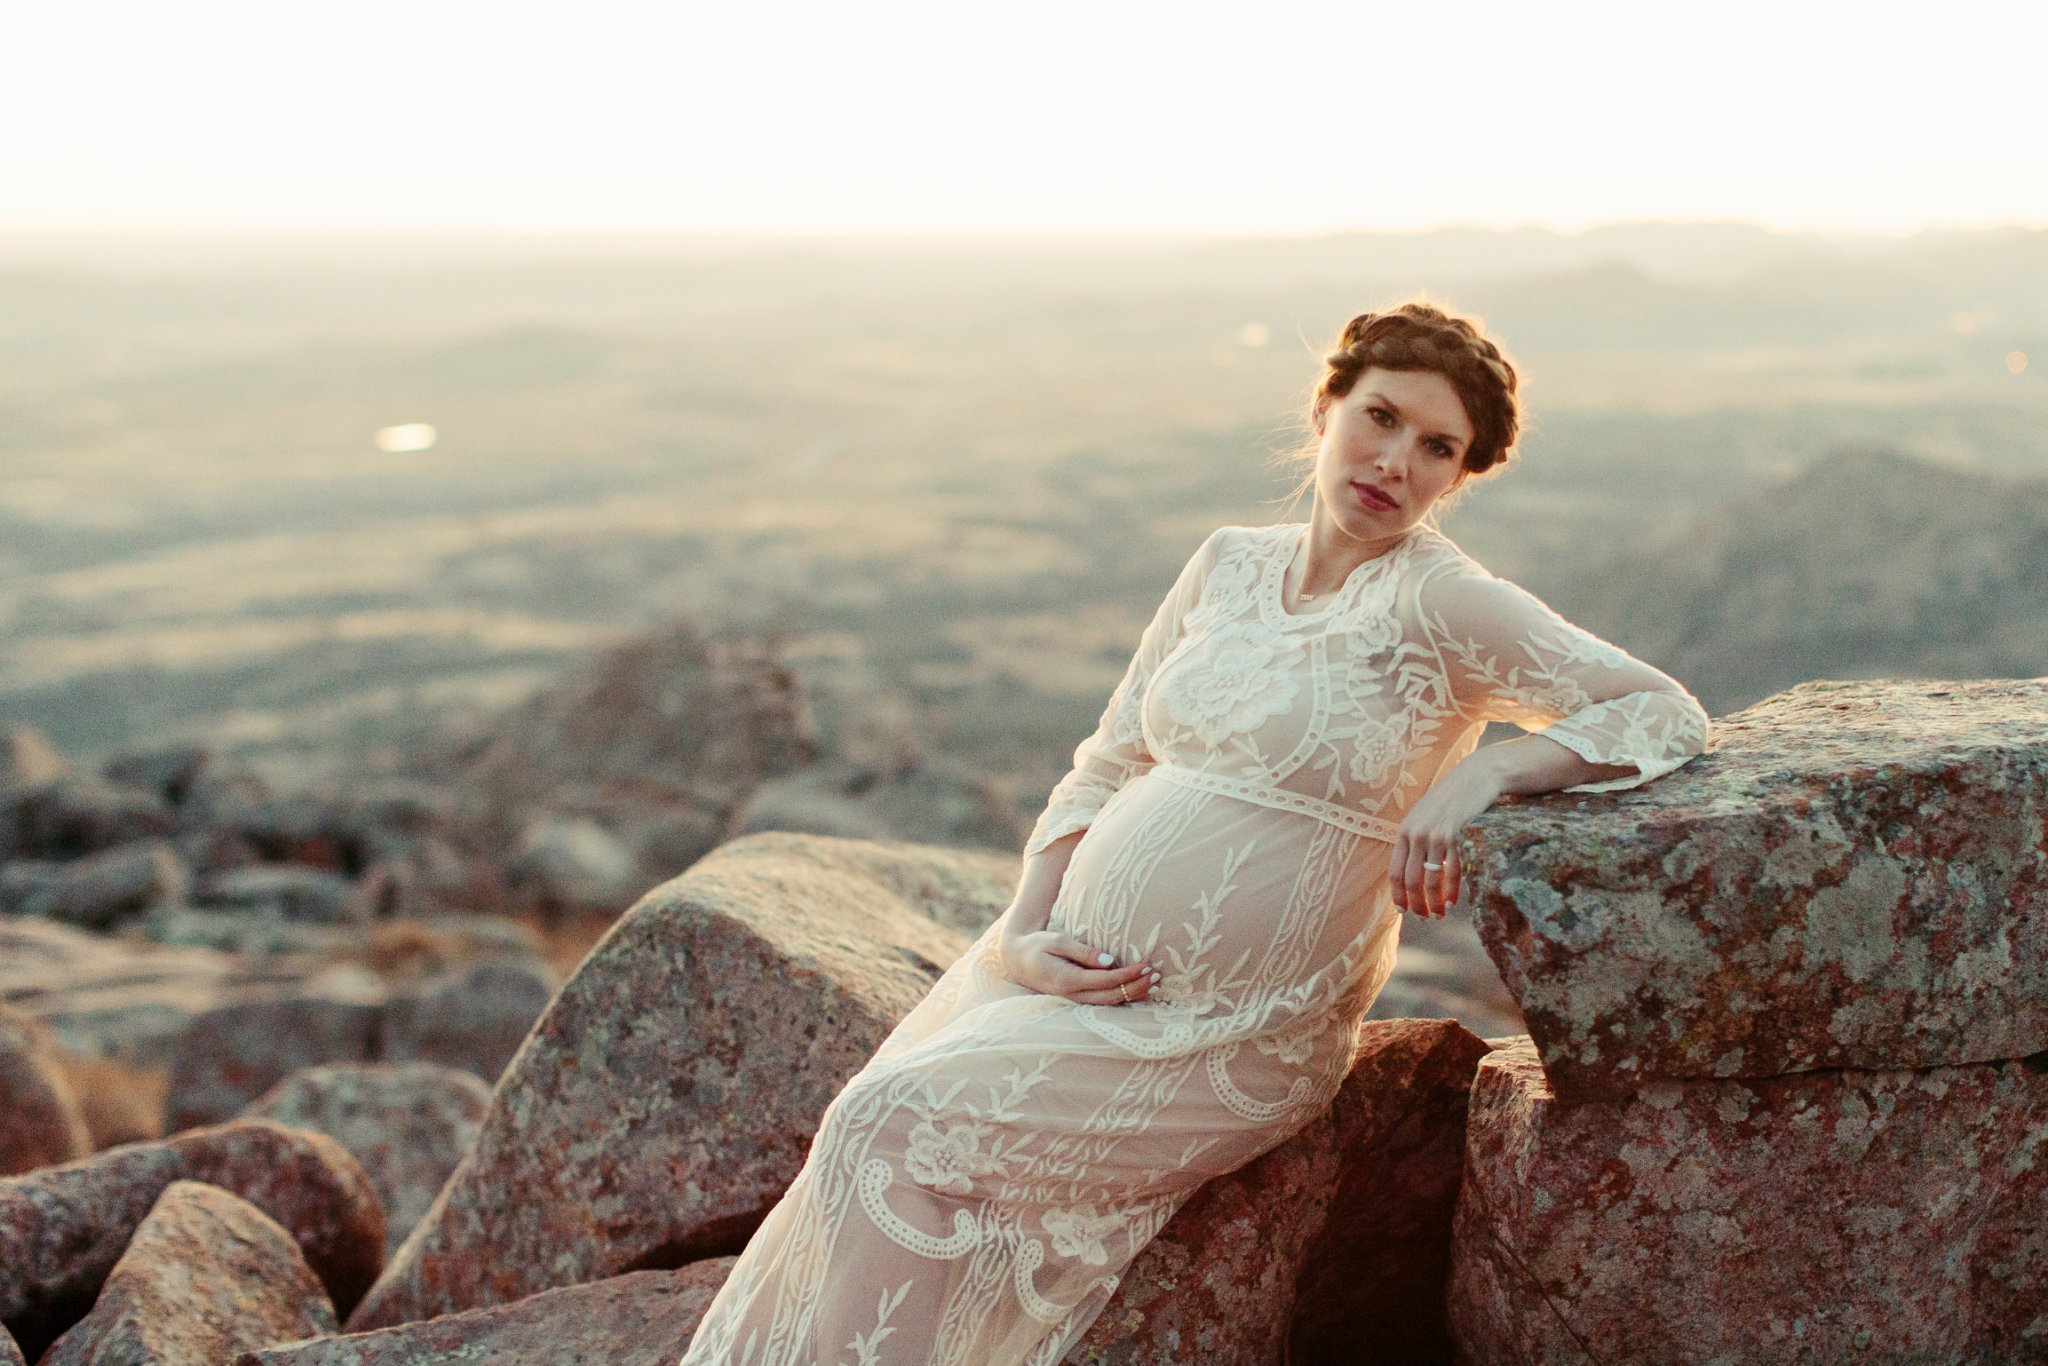 mount-scott-wichita-mountains-photography-maternity-travel-sunset.jpg